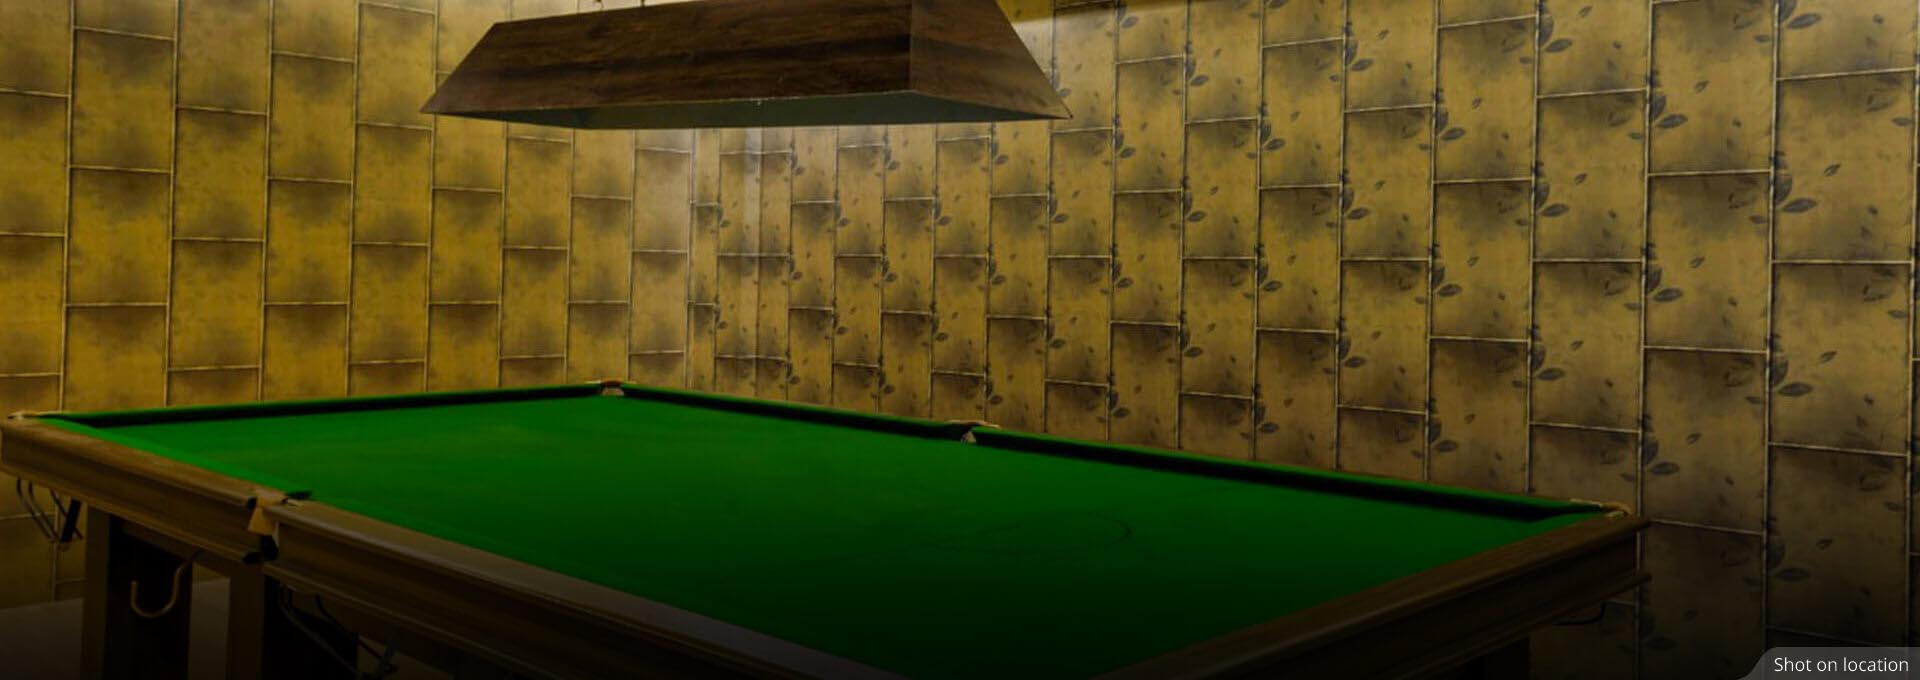 Billiards in Lake Verandahs by House of Hirandani in Bannerghatta, Bengaluru